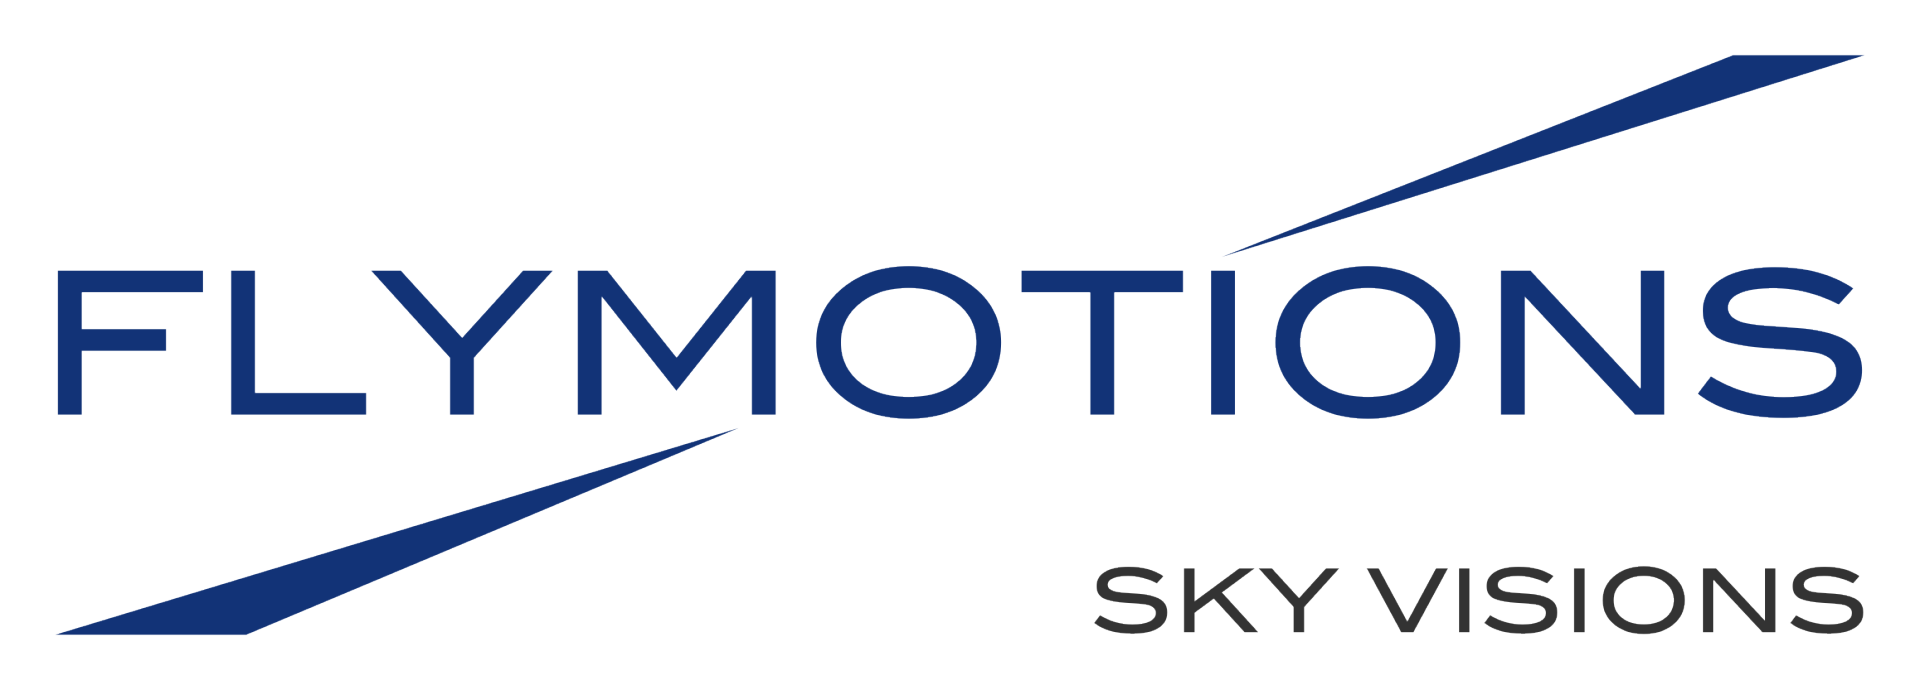 Aerial Cinematography + Services | FLYMOTIONS